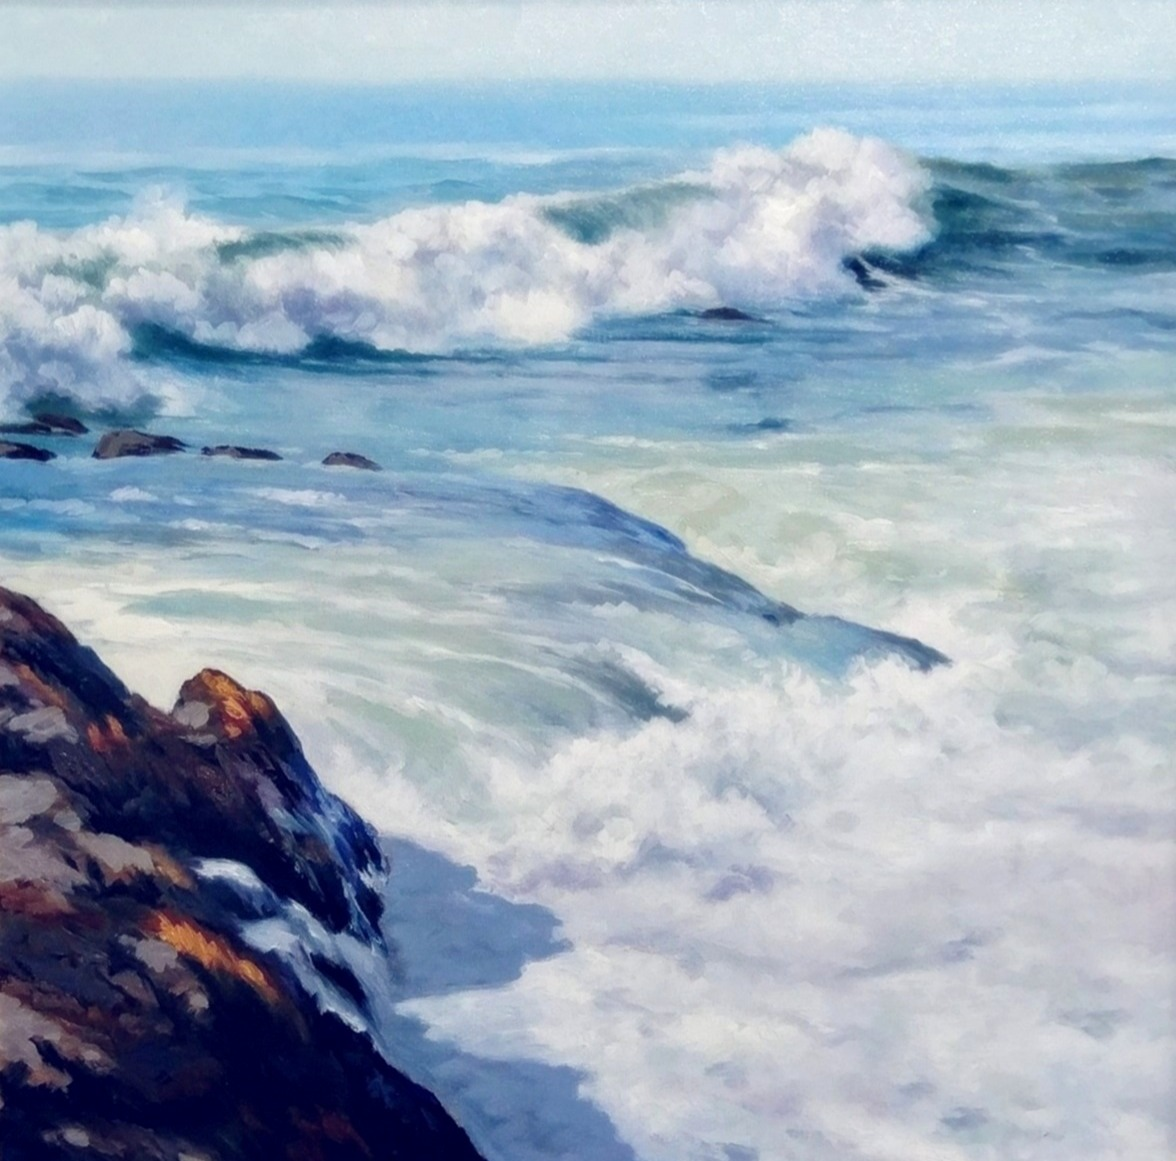 H Bartlett - Newport Waves, oil on linen